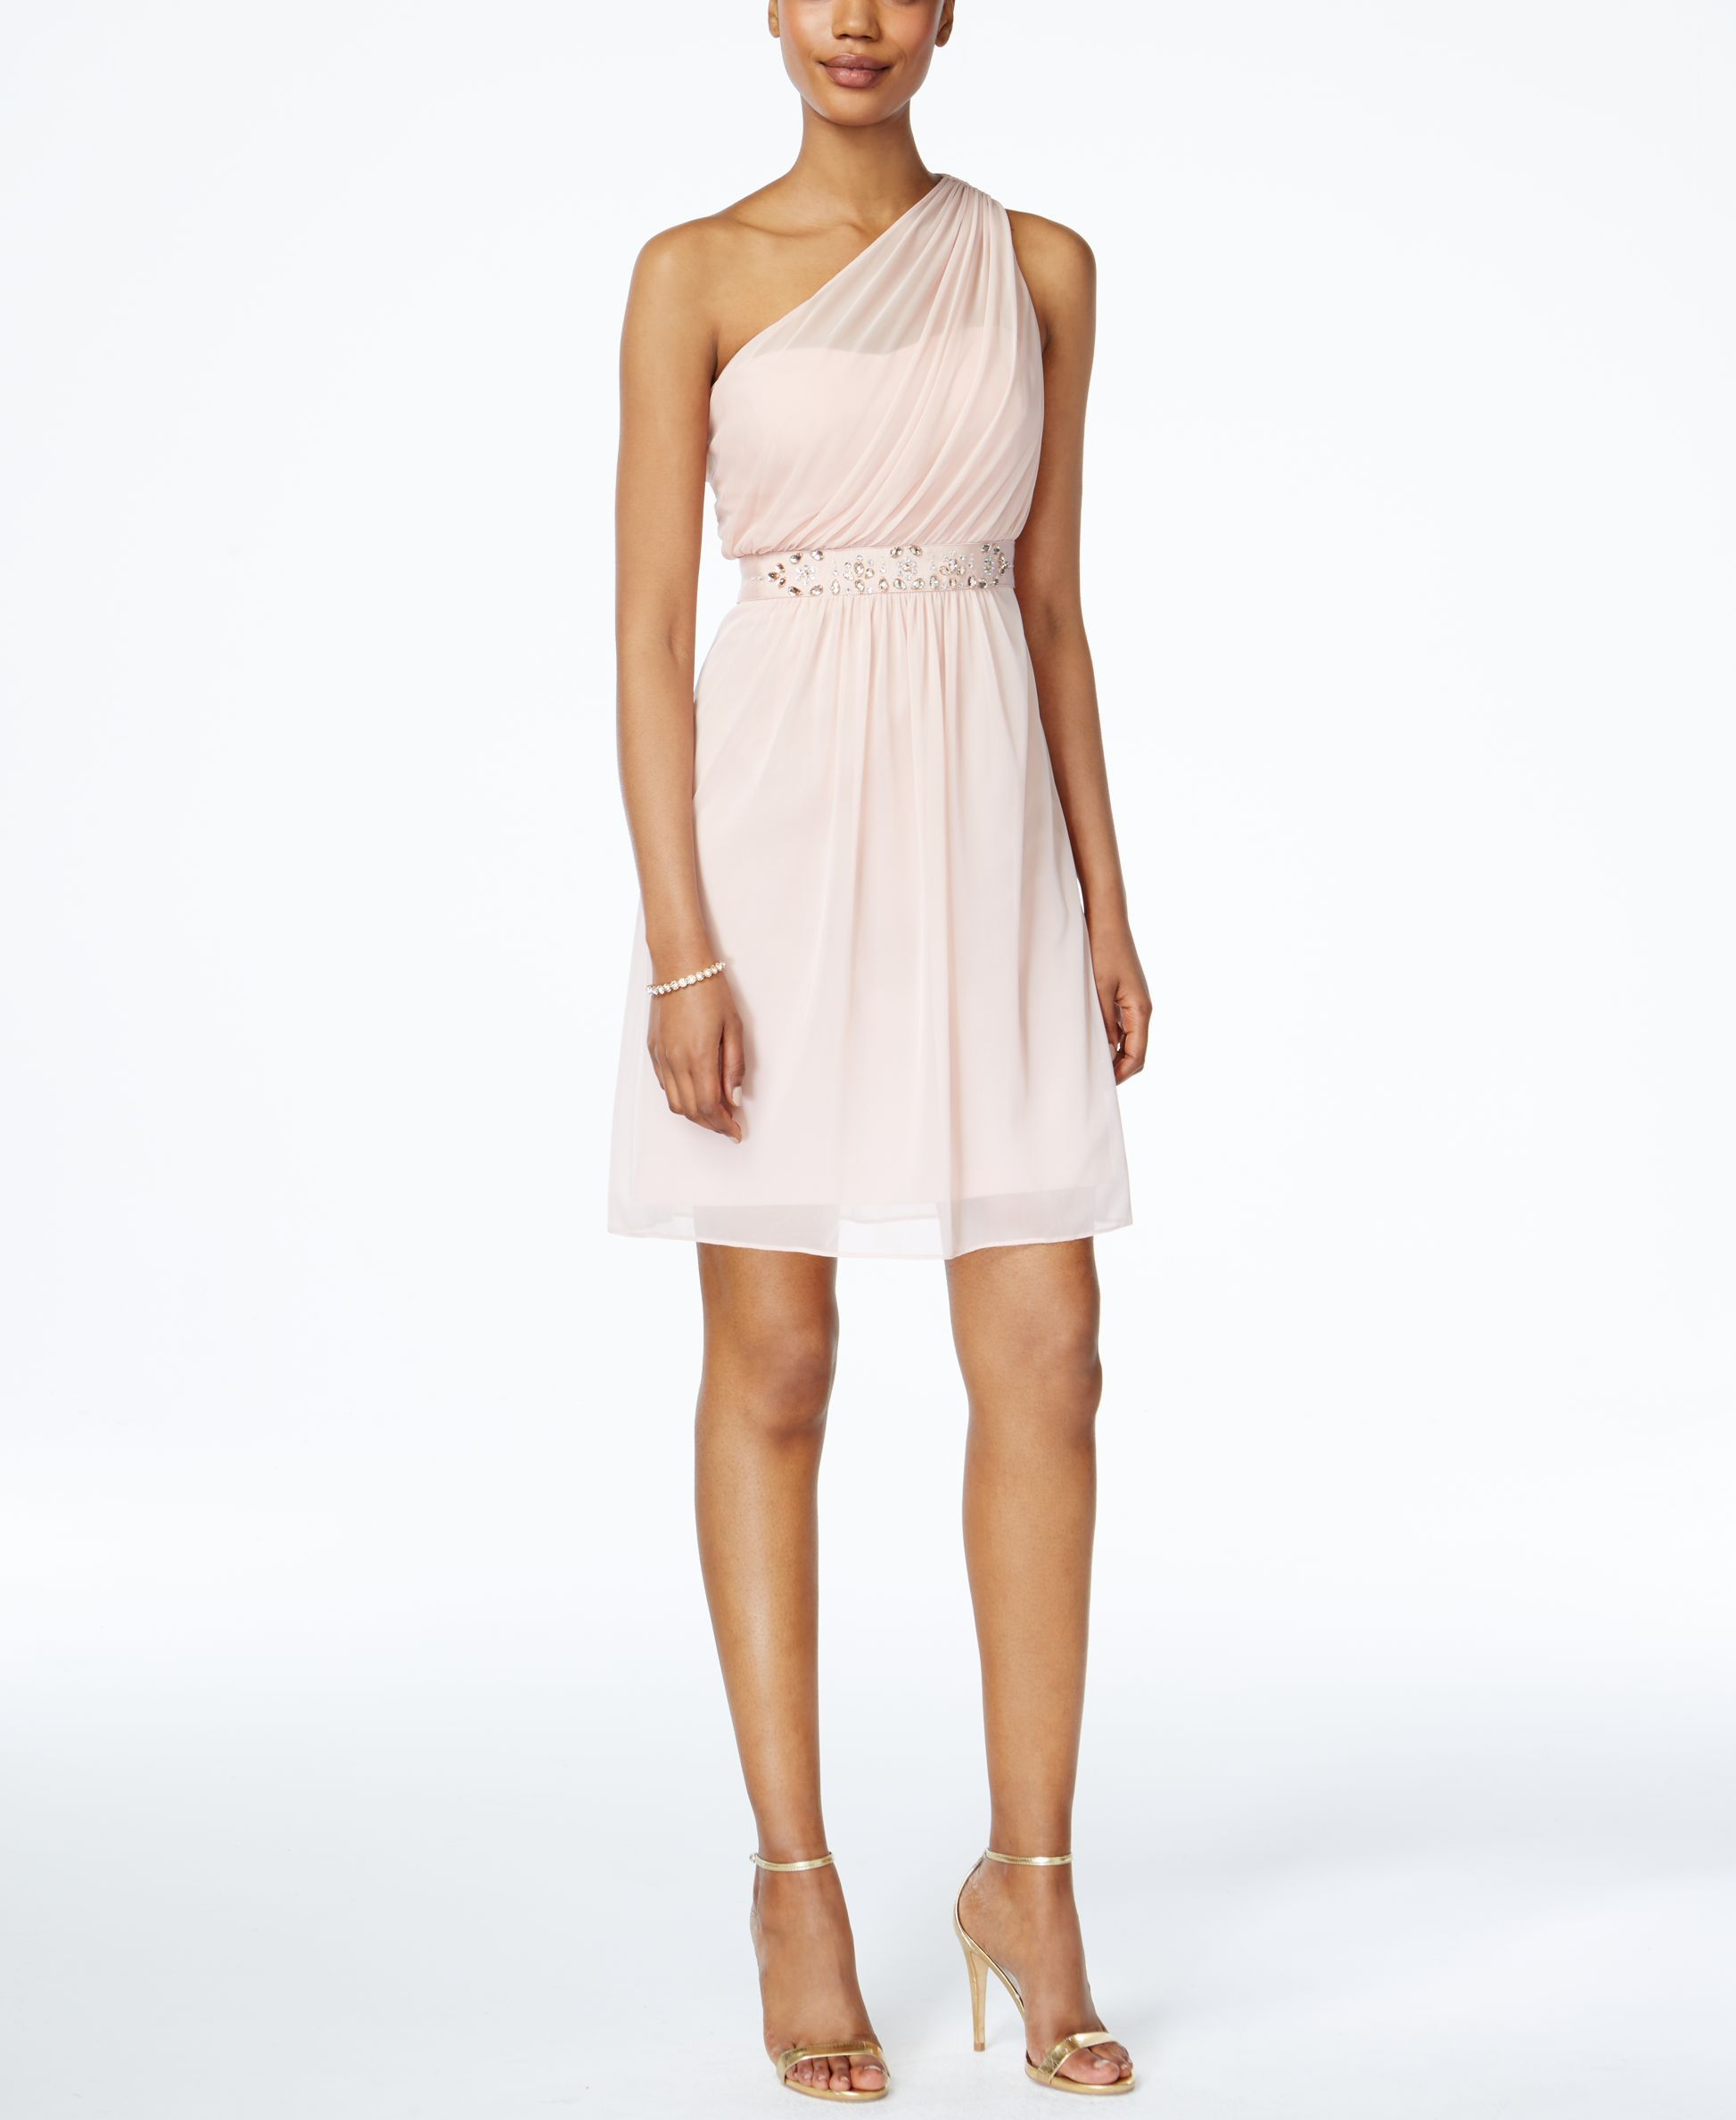 Adrianna papell oneshoulder embellished dress products